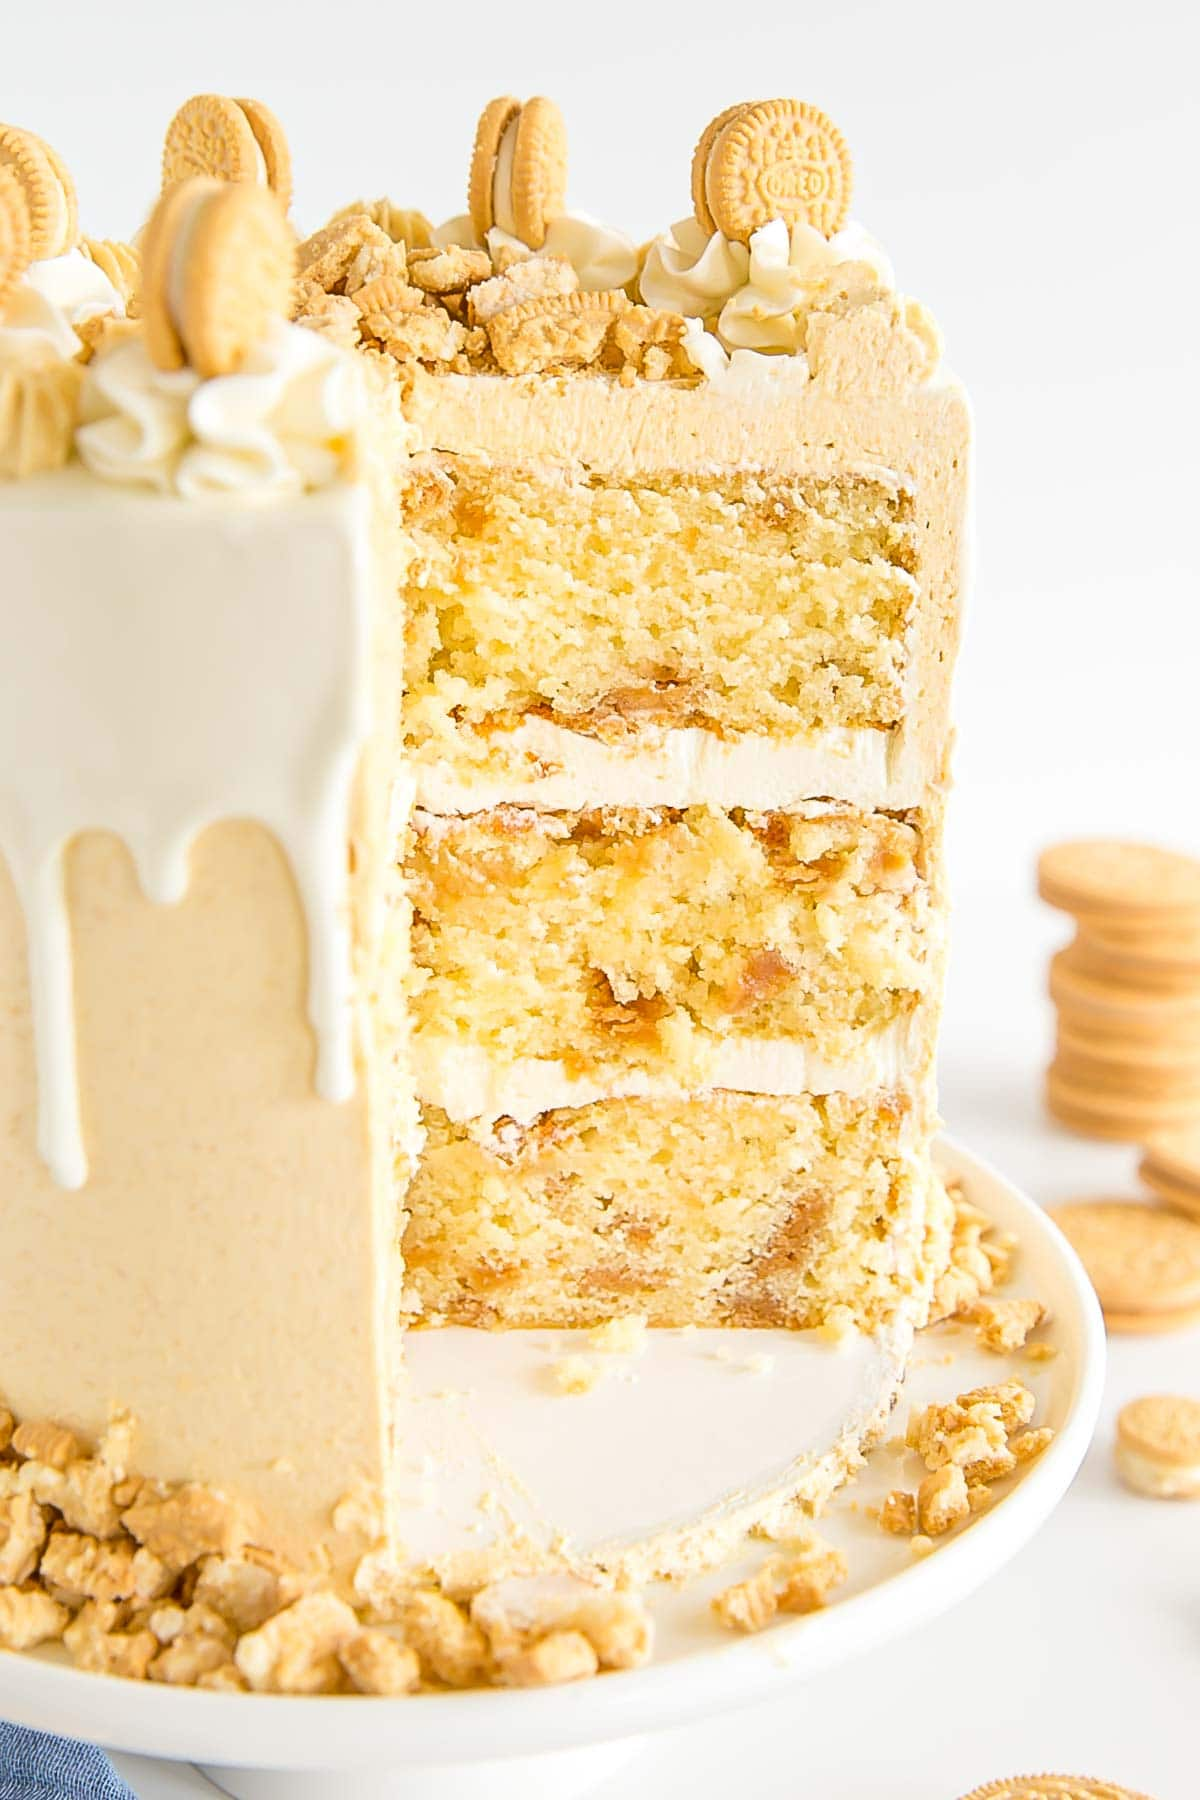 Cross-section of the Golden Oreo cake showing the cake layers